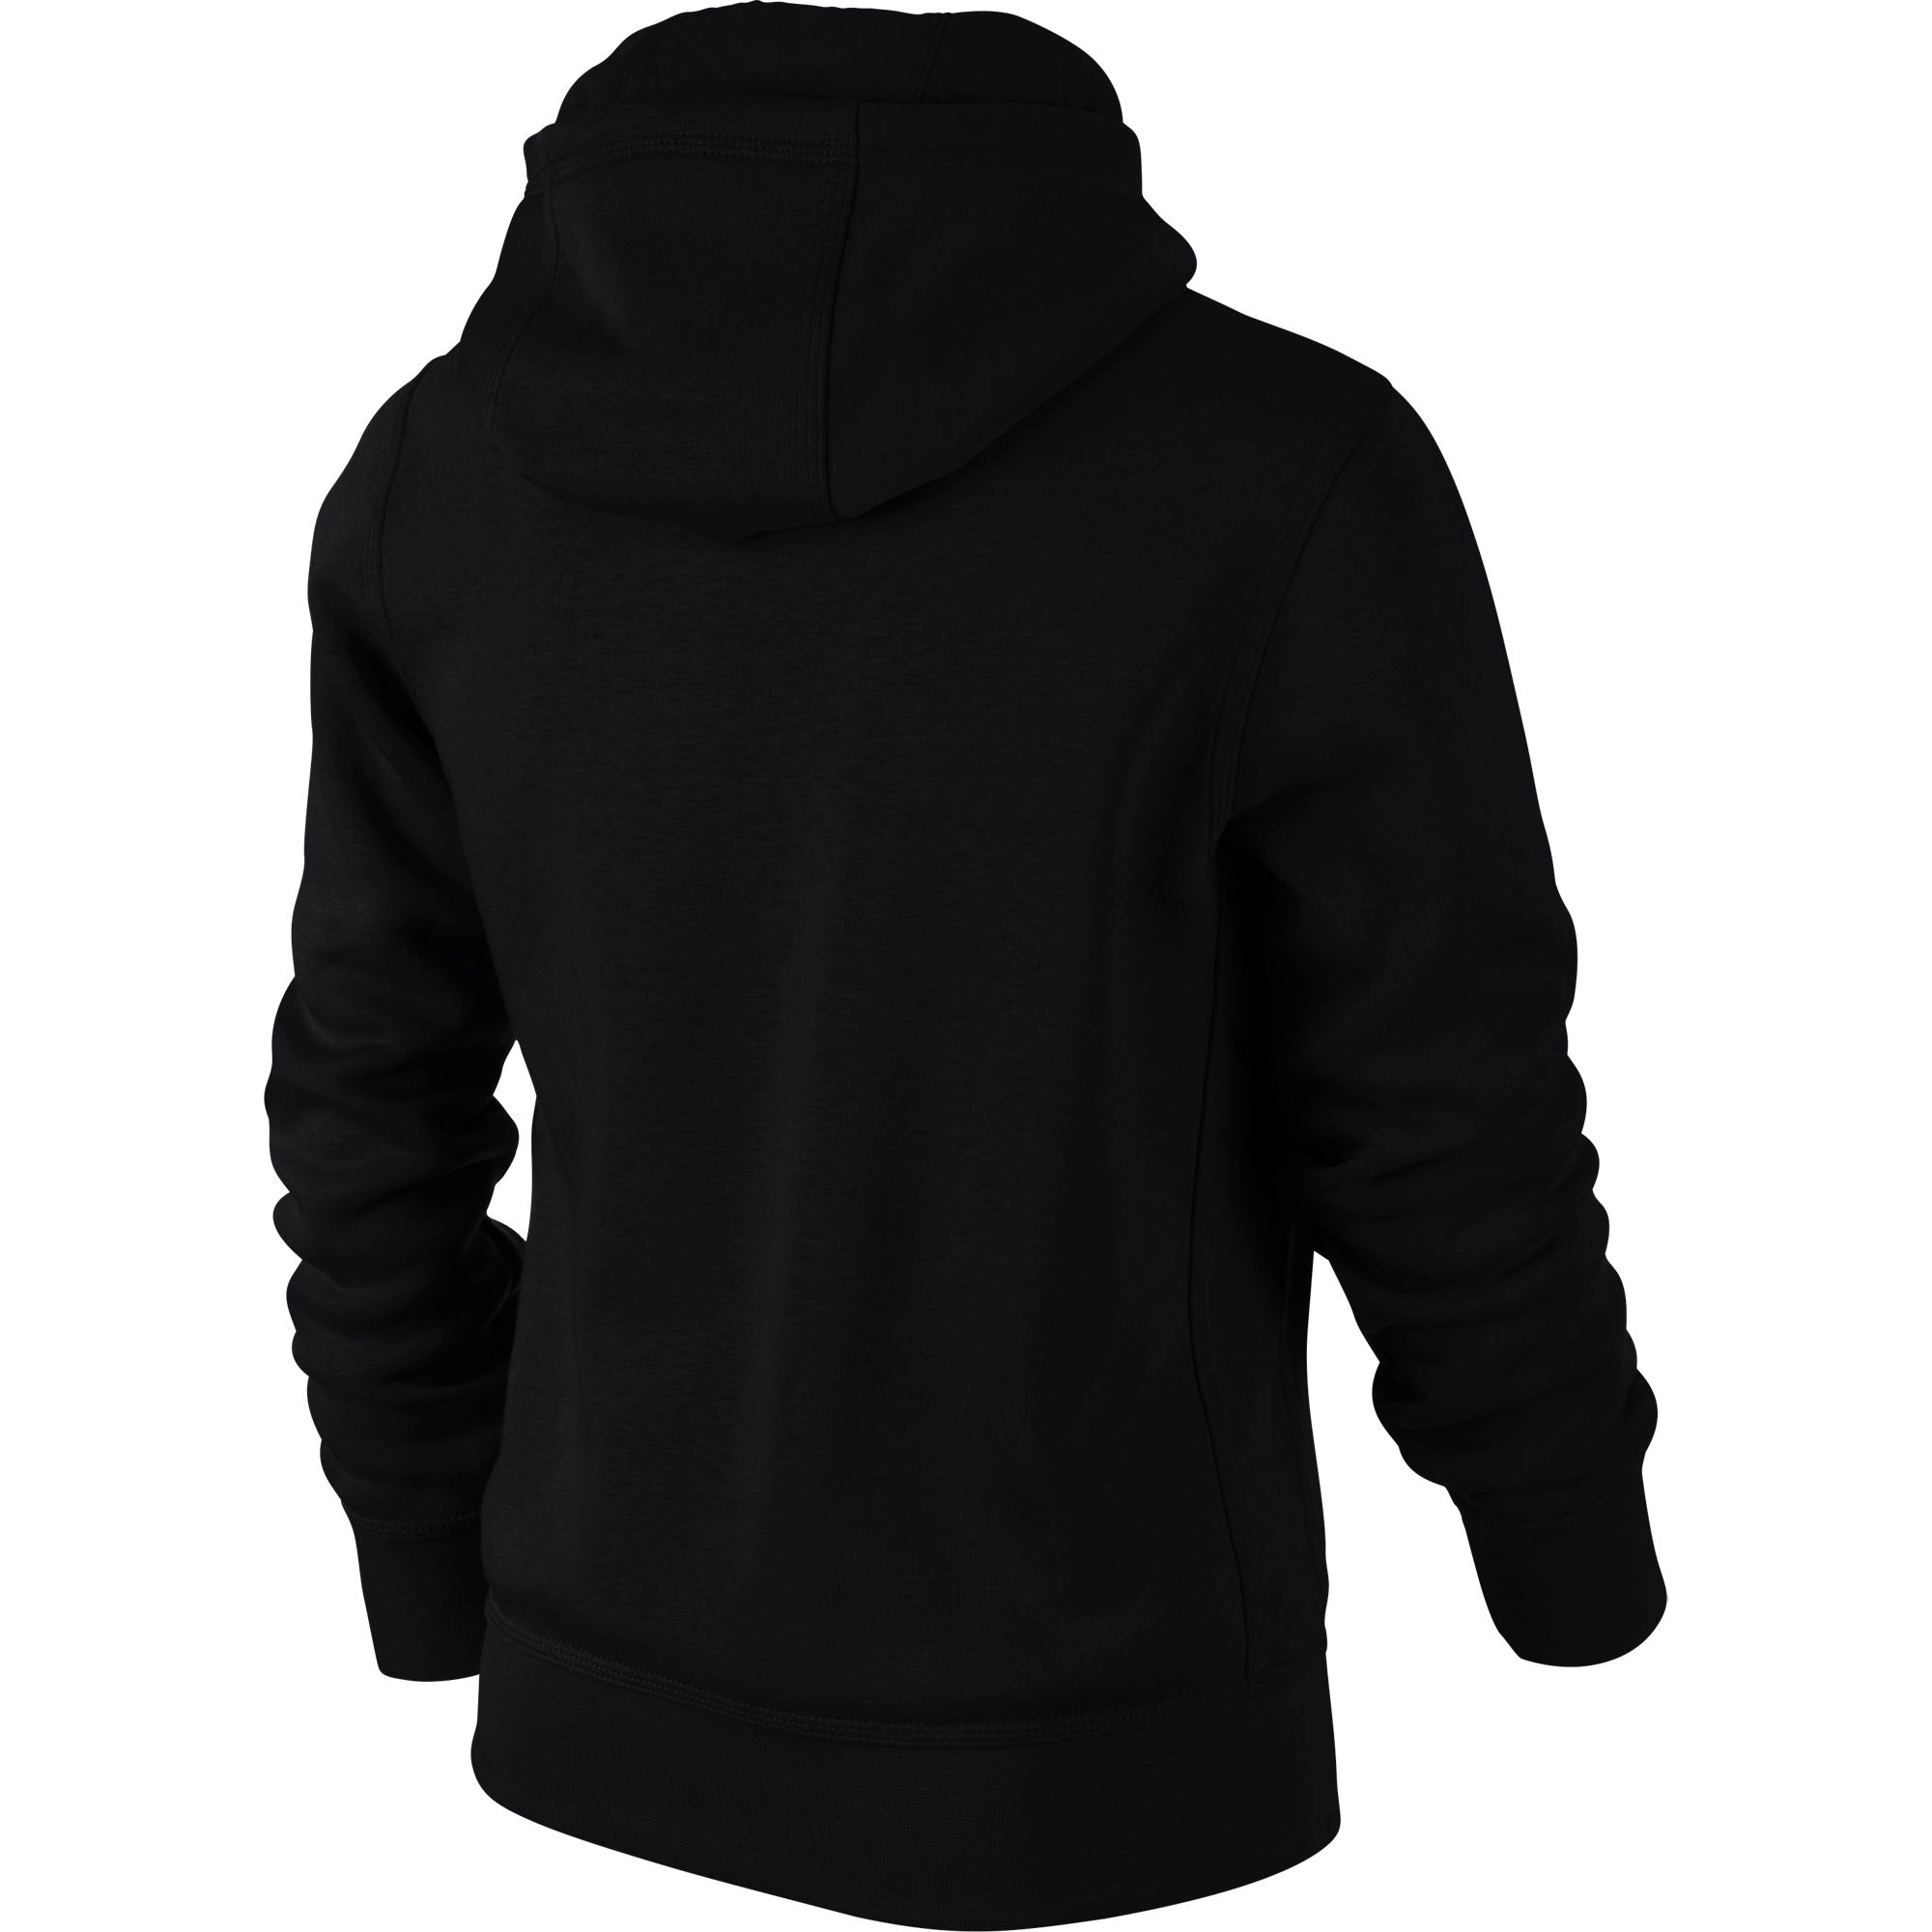 Nike Kids YA76 Brushed Fleece Pull-On Hoodie - Black/White